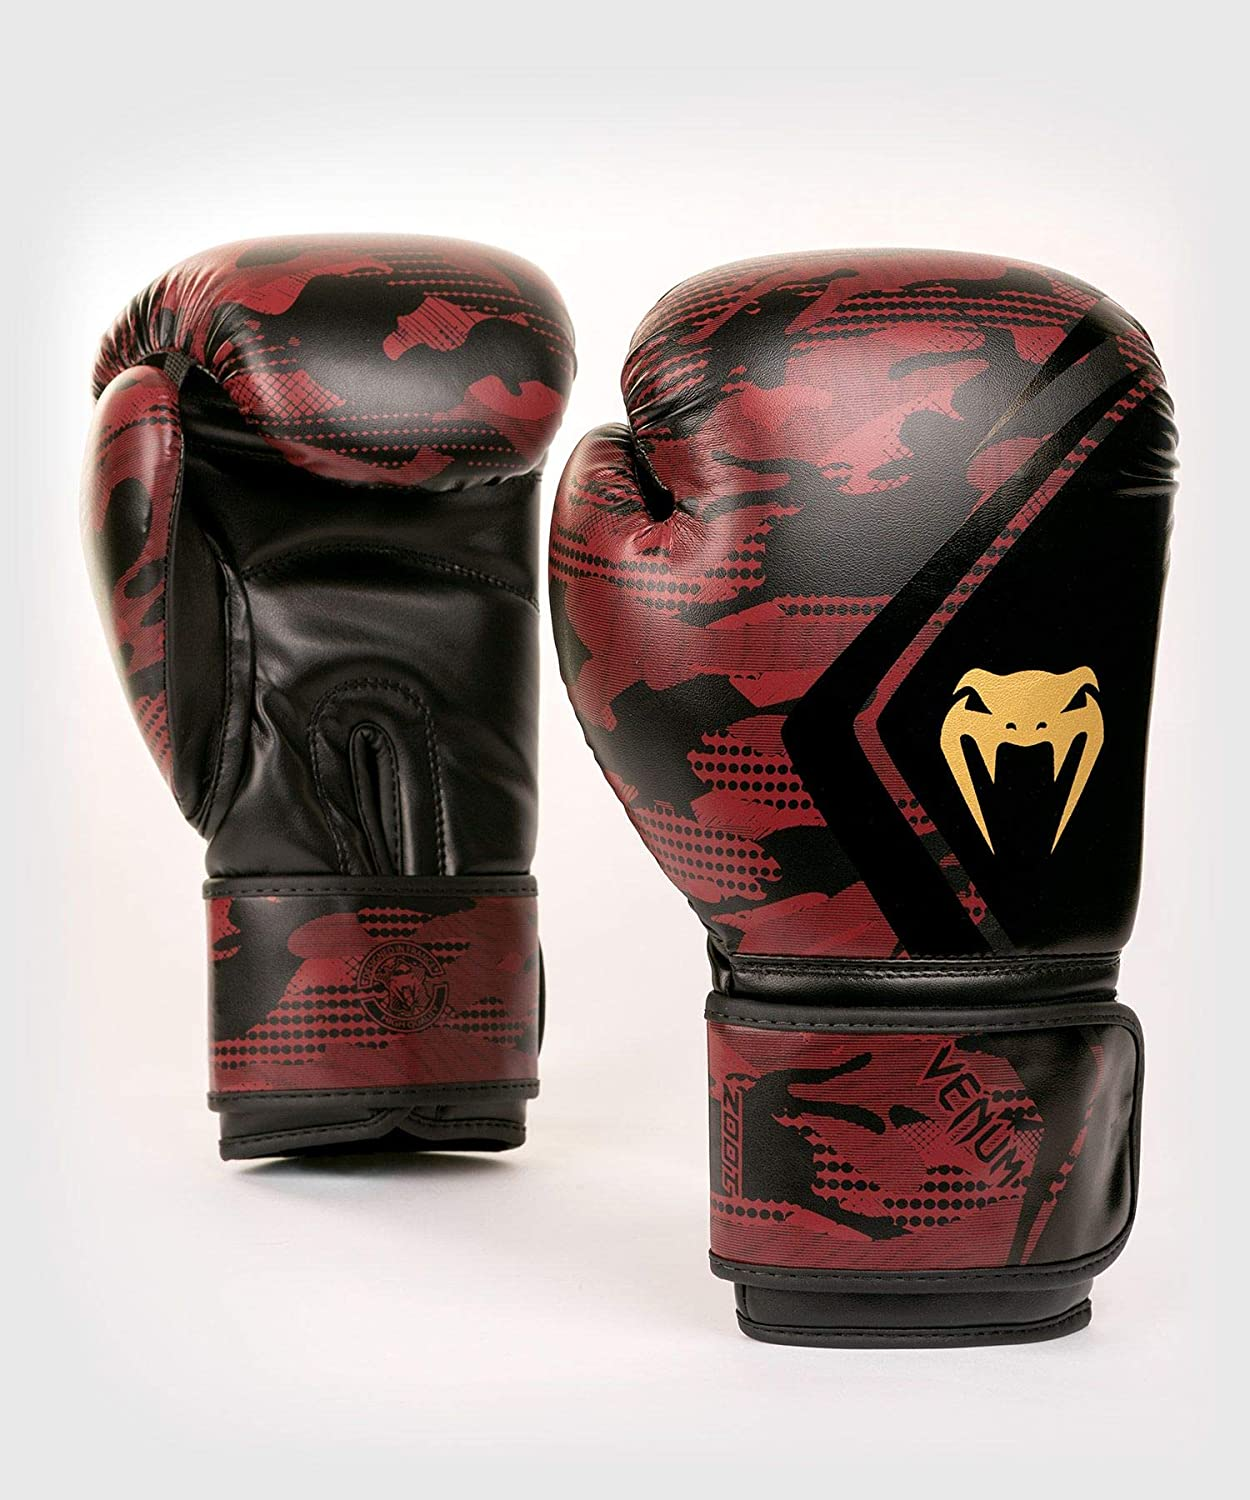 Venum Defender Contender 2.0 Boxing Gloves